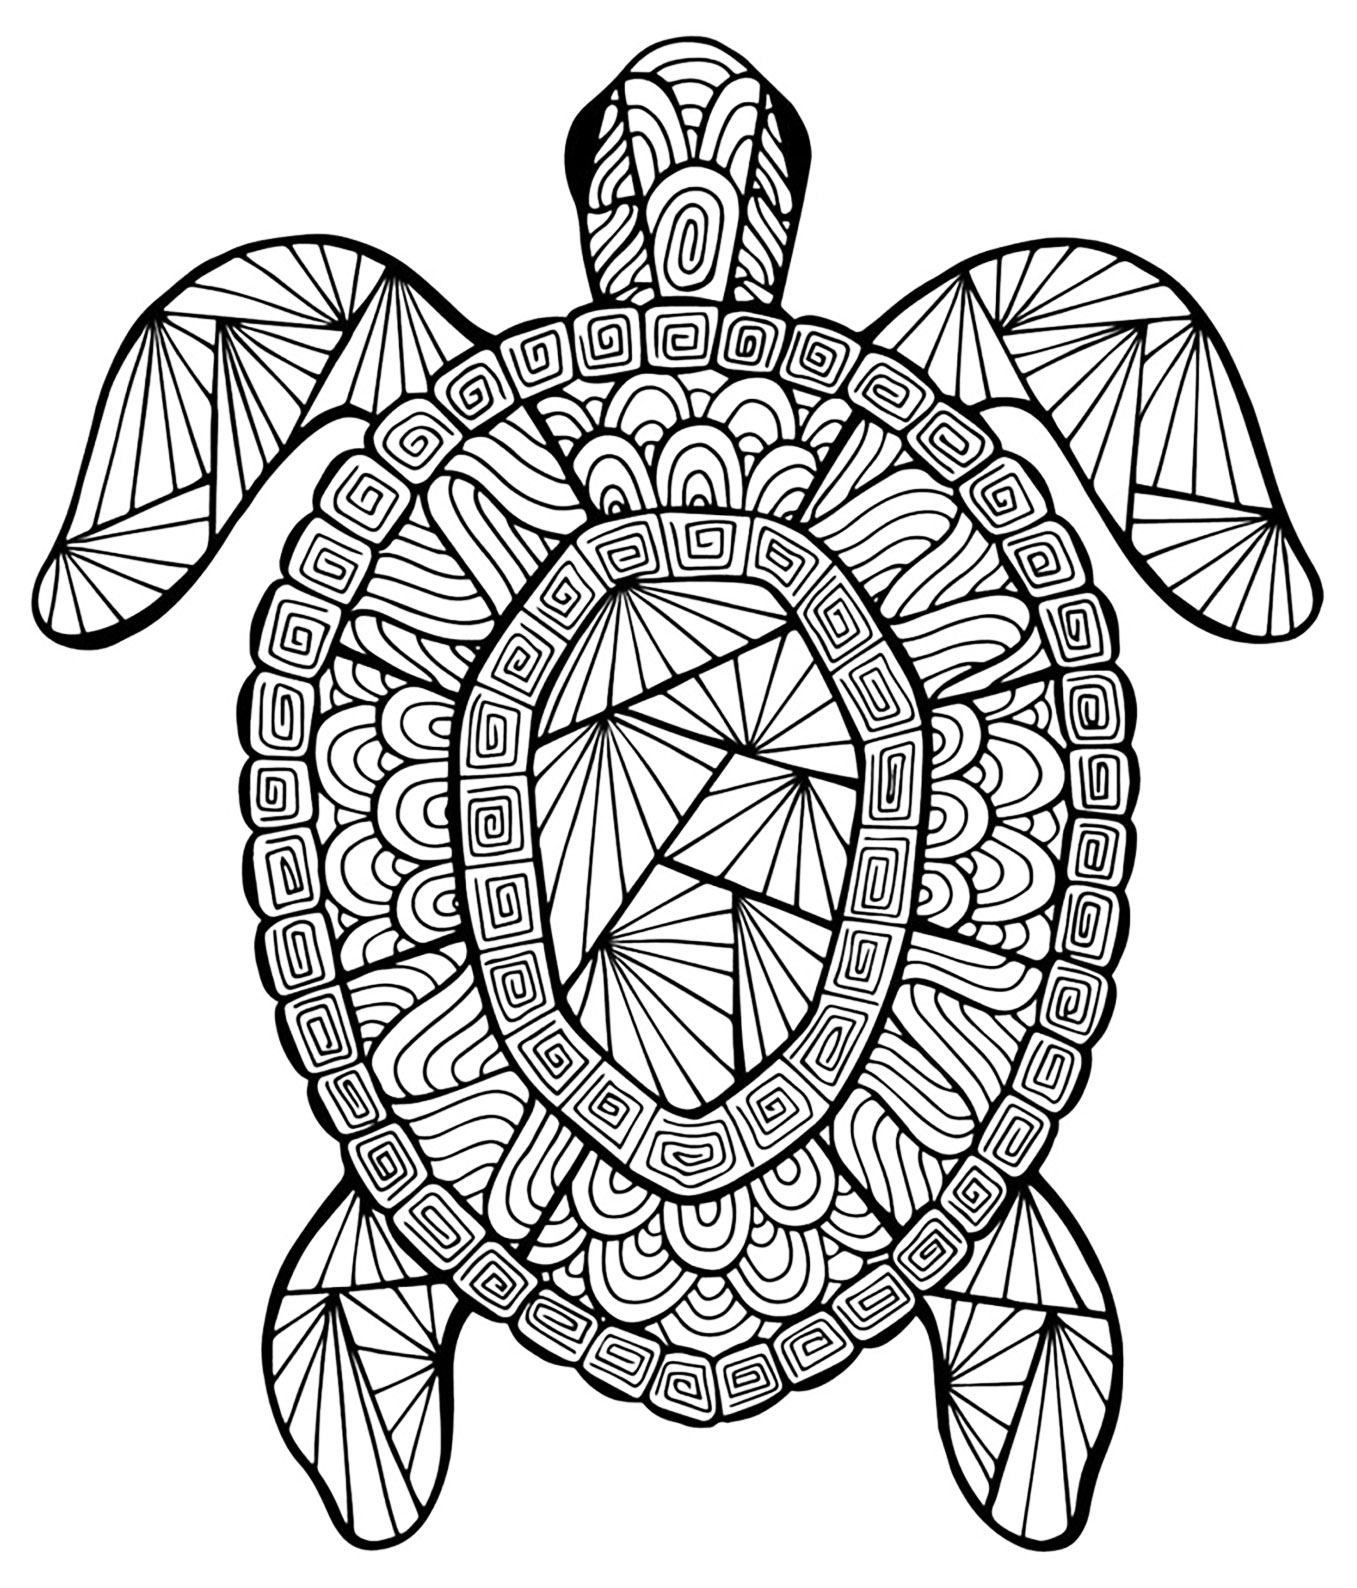 Tortue Coloriages D Animaux 100 Mandalas Zen Anti Stress